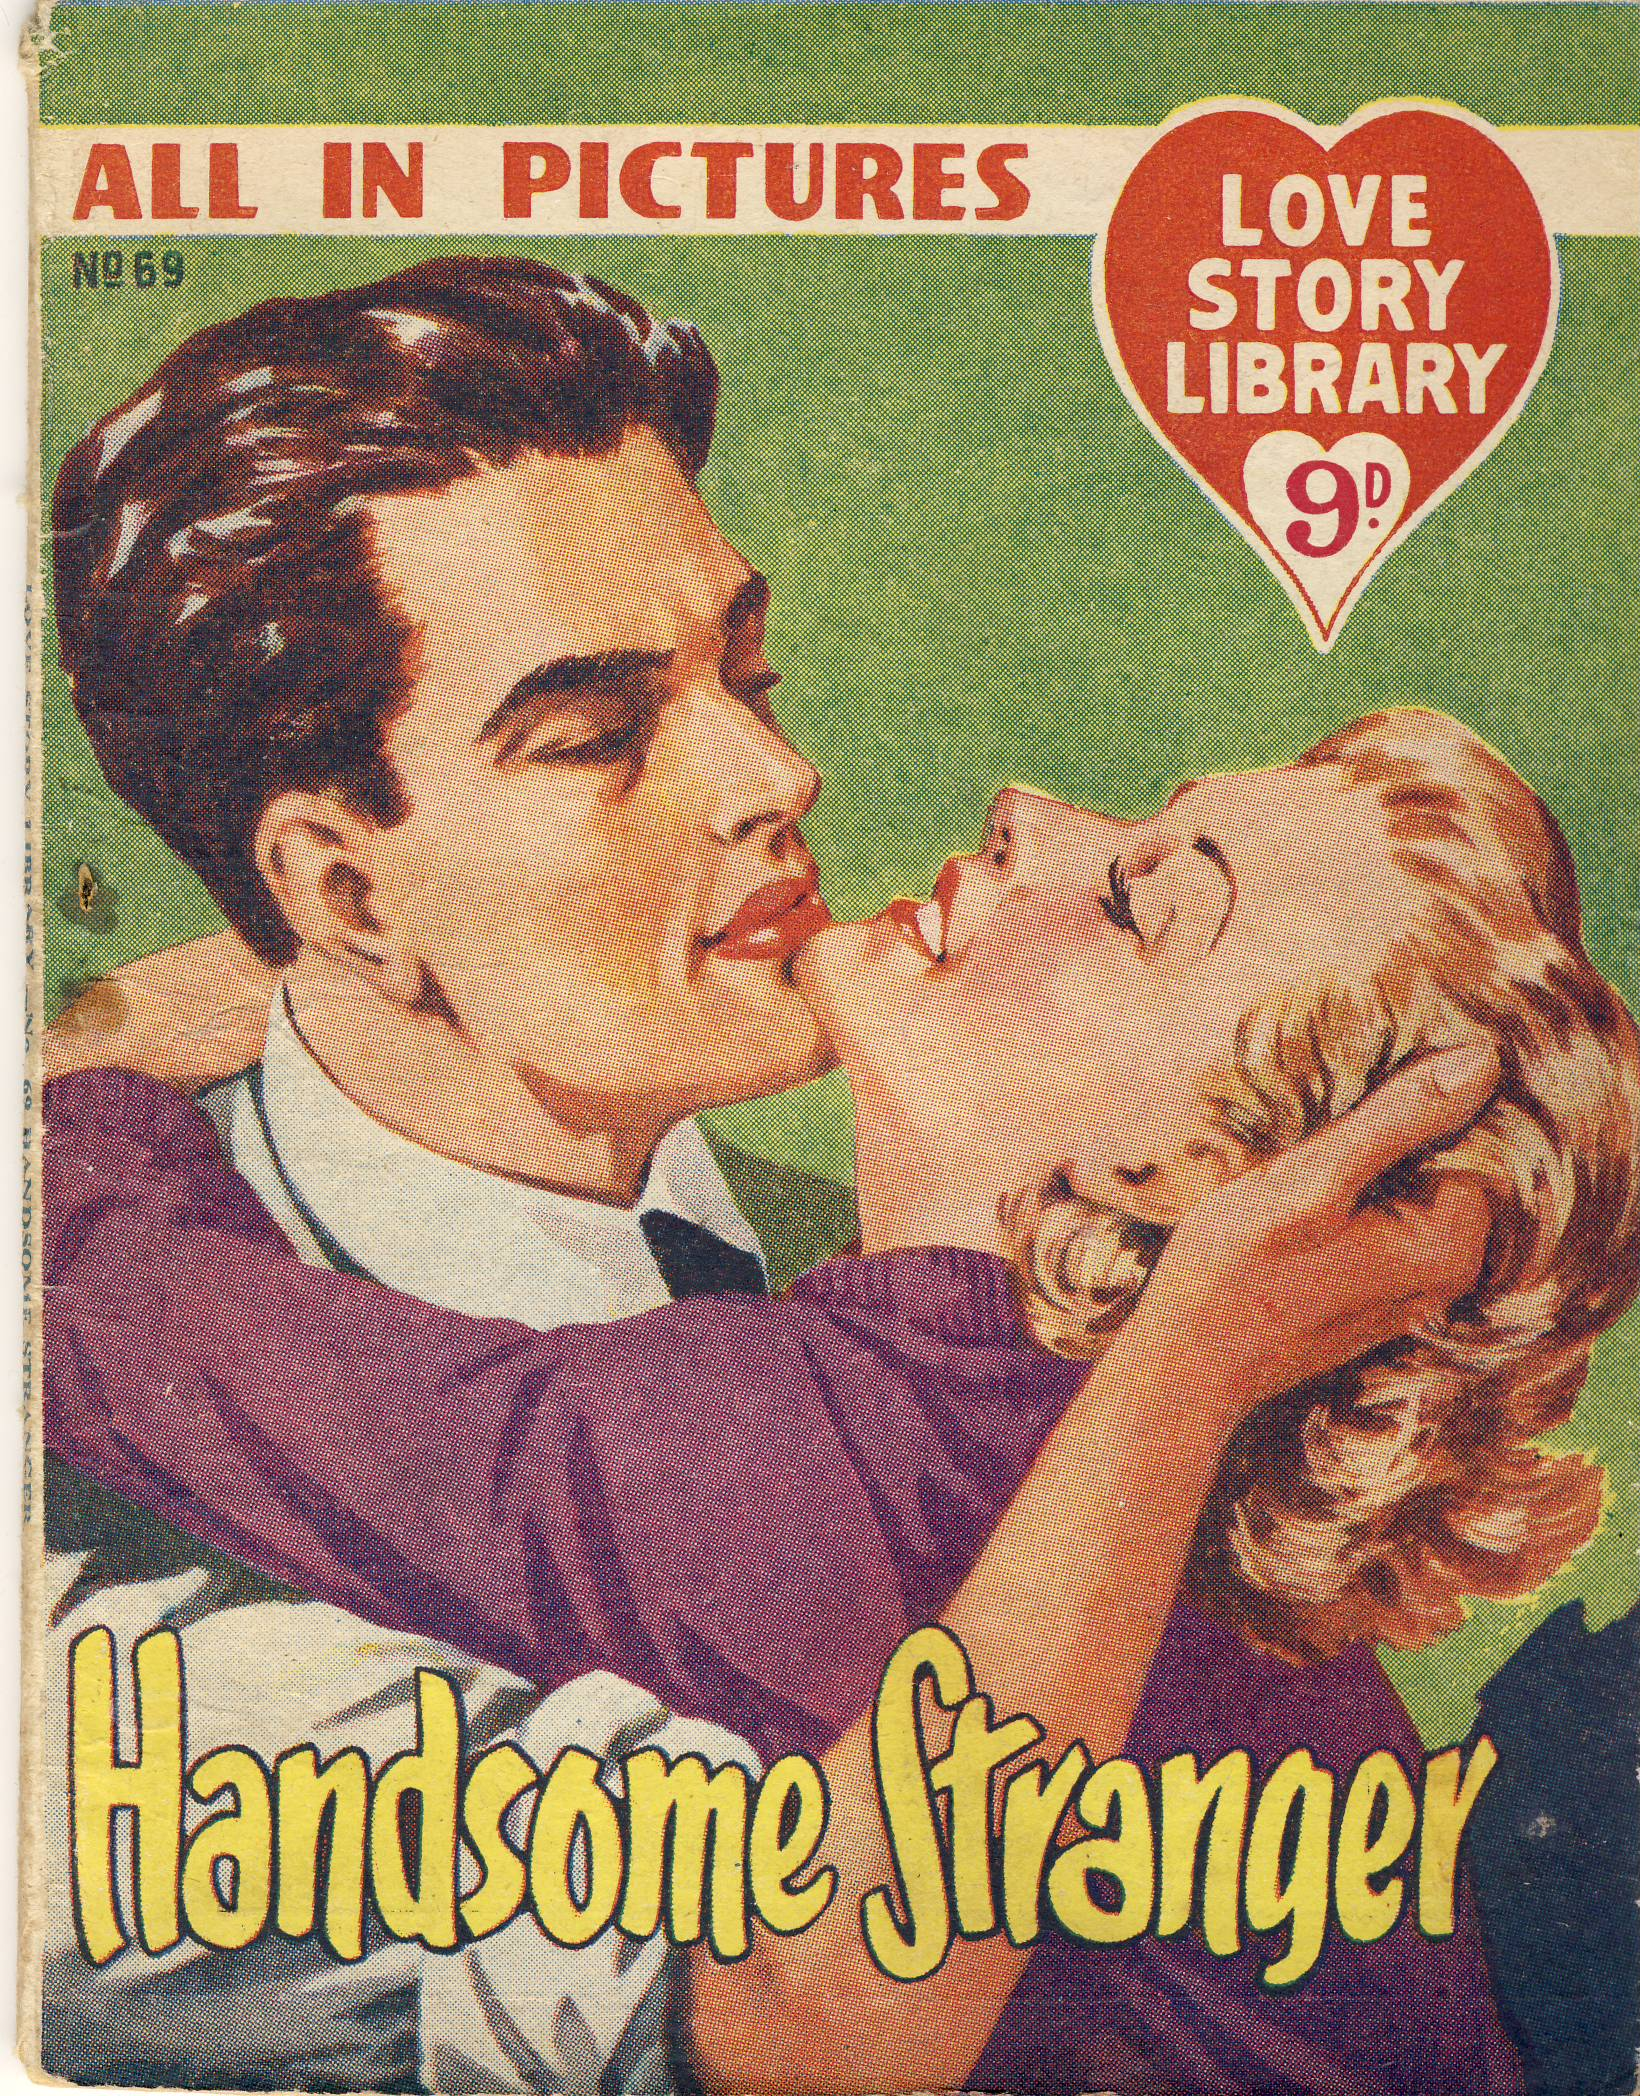 Handsome Stranger No.69 All in Pictures LOVE STORY  LIBRARY vintage magazine refS5  a pre-owned vintage item in well read condition.Anadin advert inside back cover. Bravingtons jewellers Kings Cross Advert on back cover.